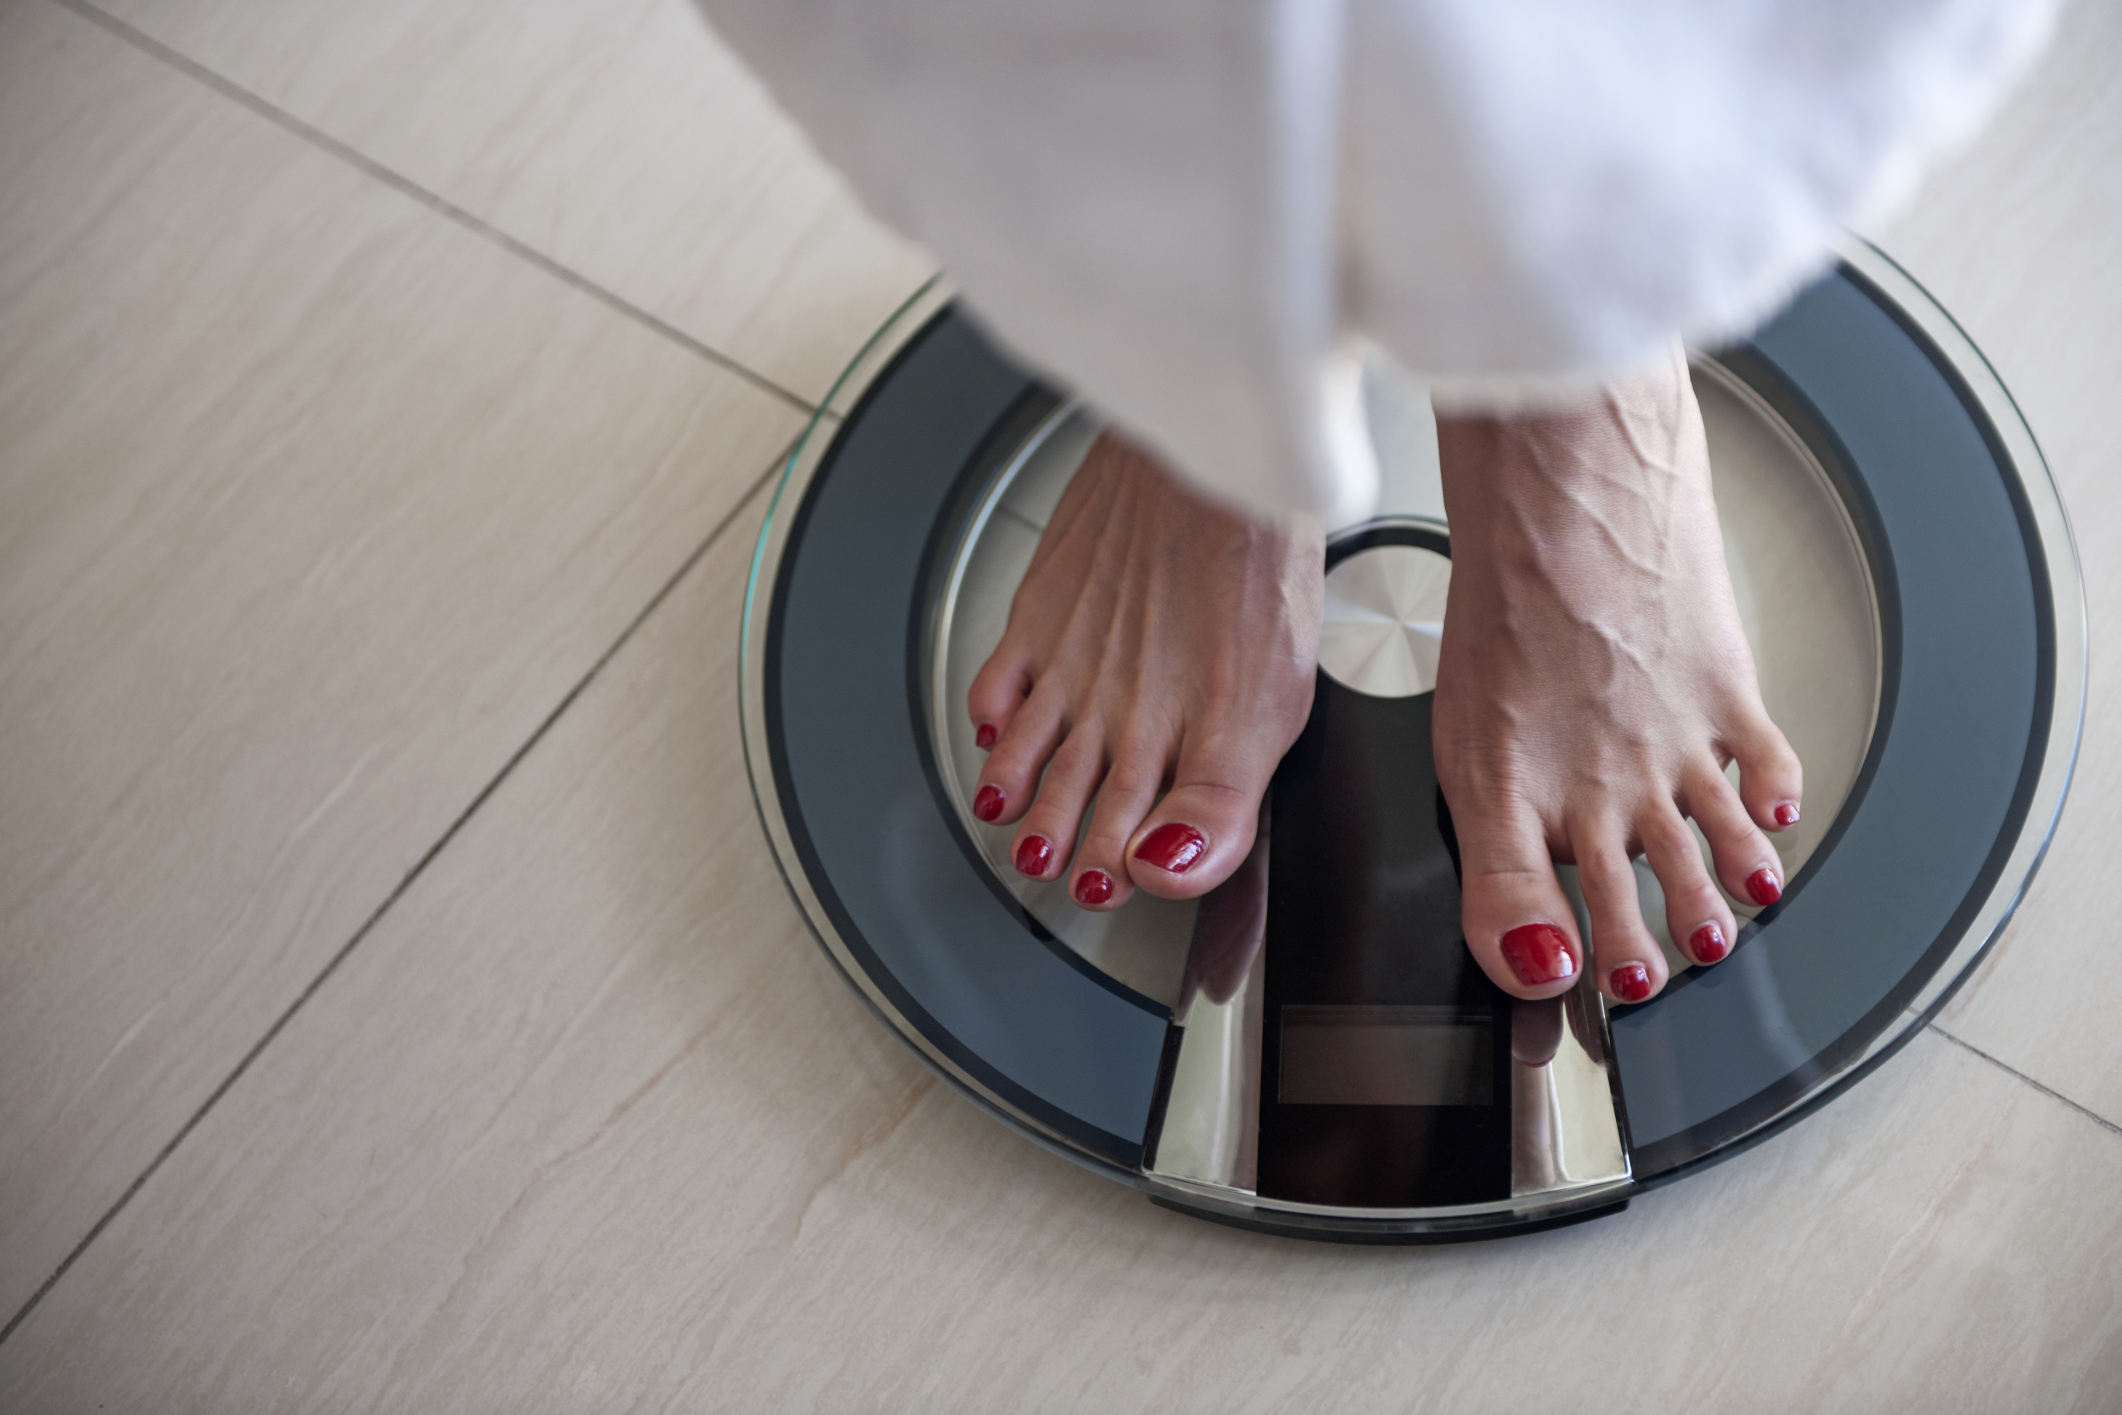 This, 3 apple weight loss diet studies show that